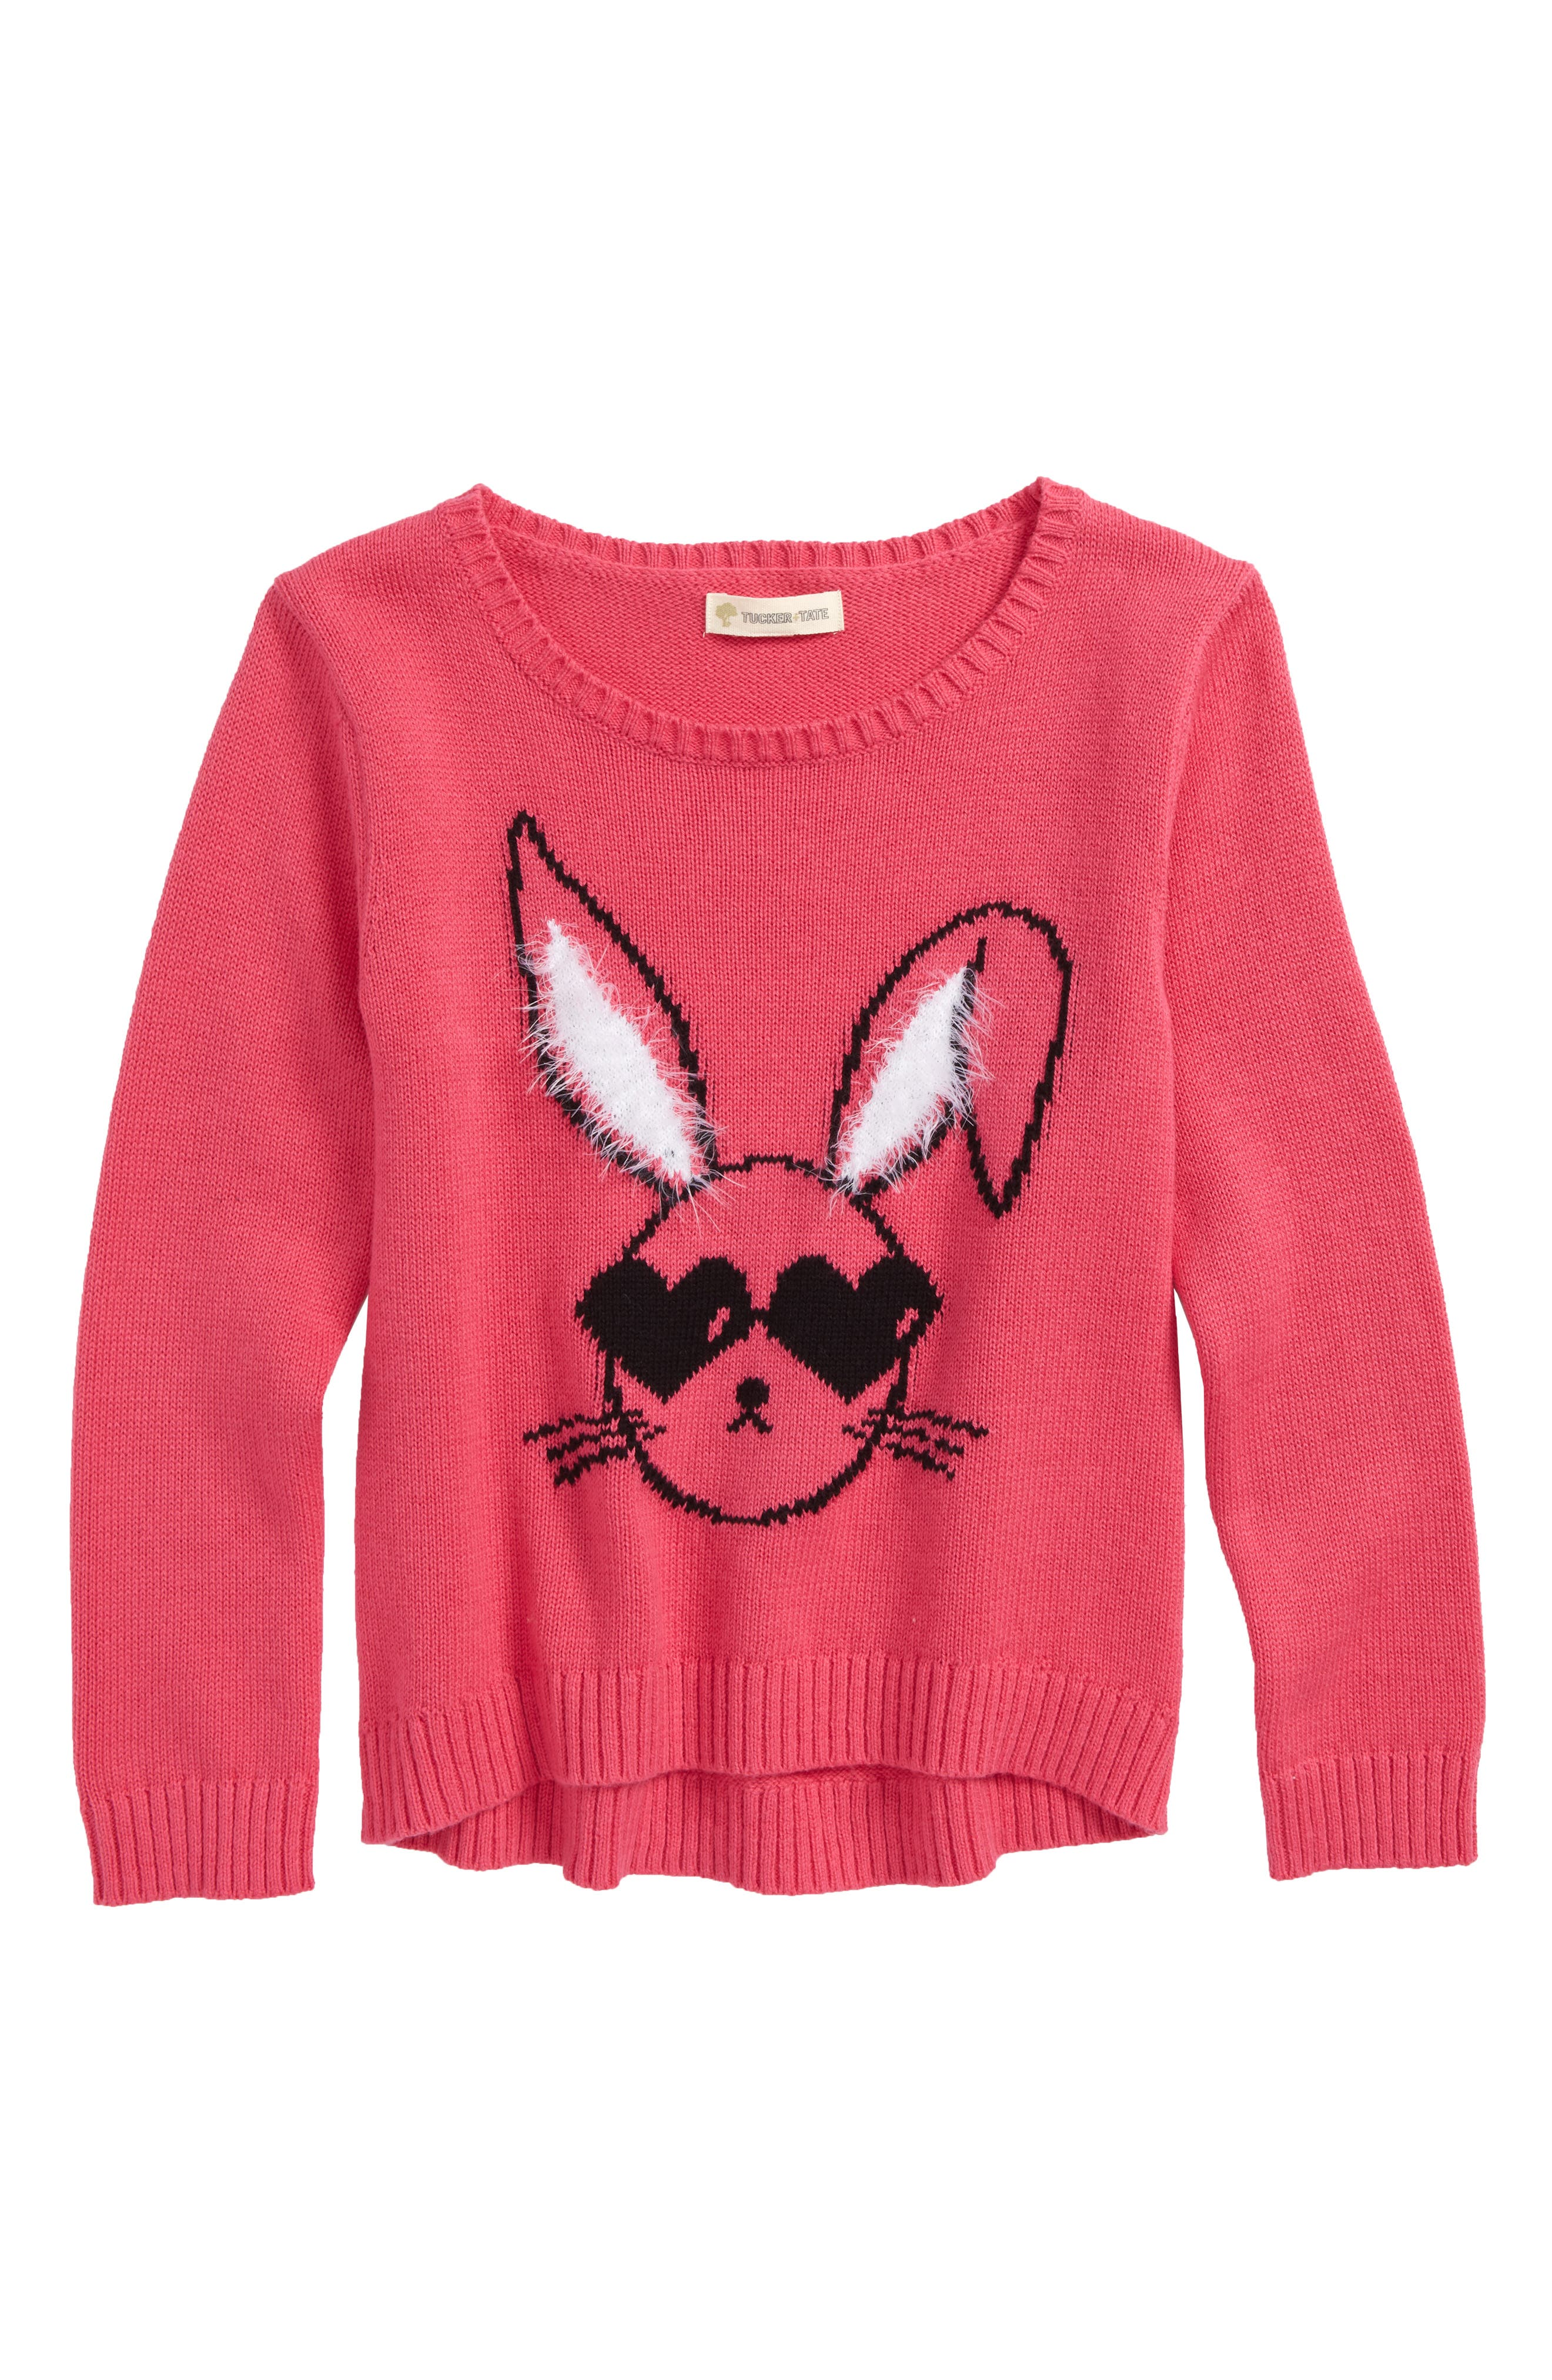 Icon Sweater,                         Main,                         color, PINK MAGENTA COOL BUNNY